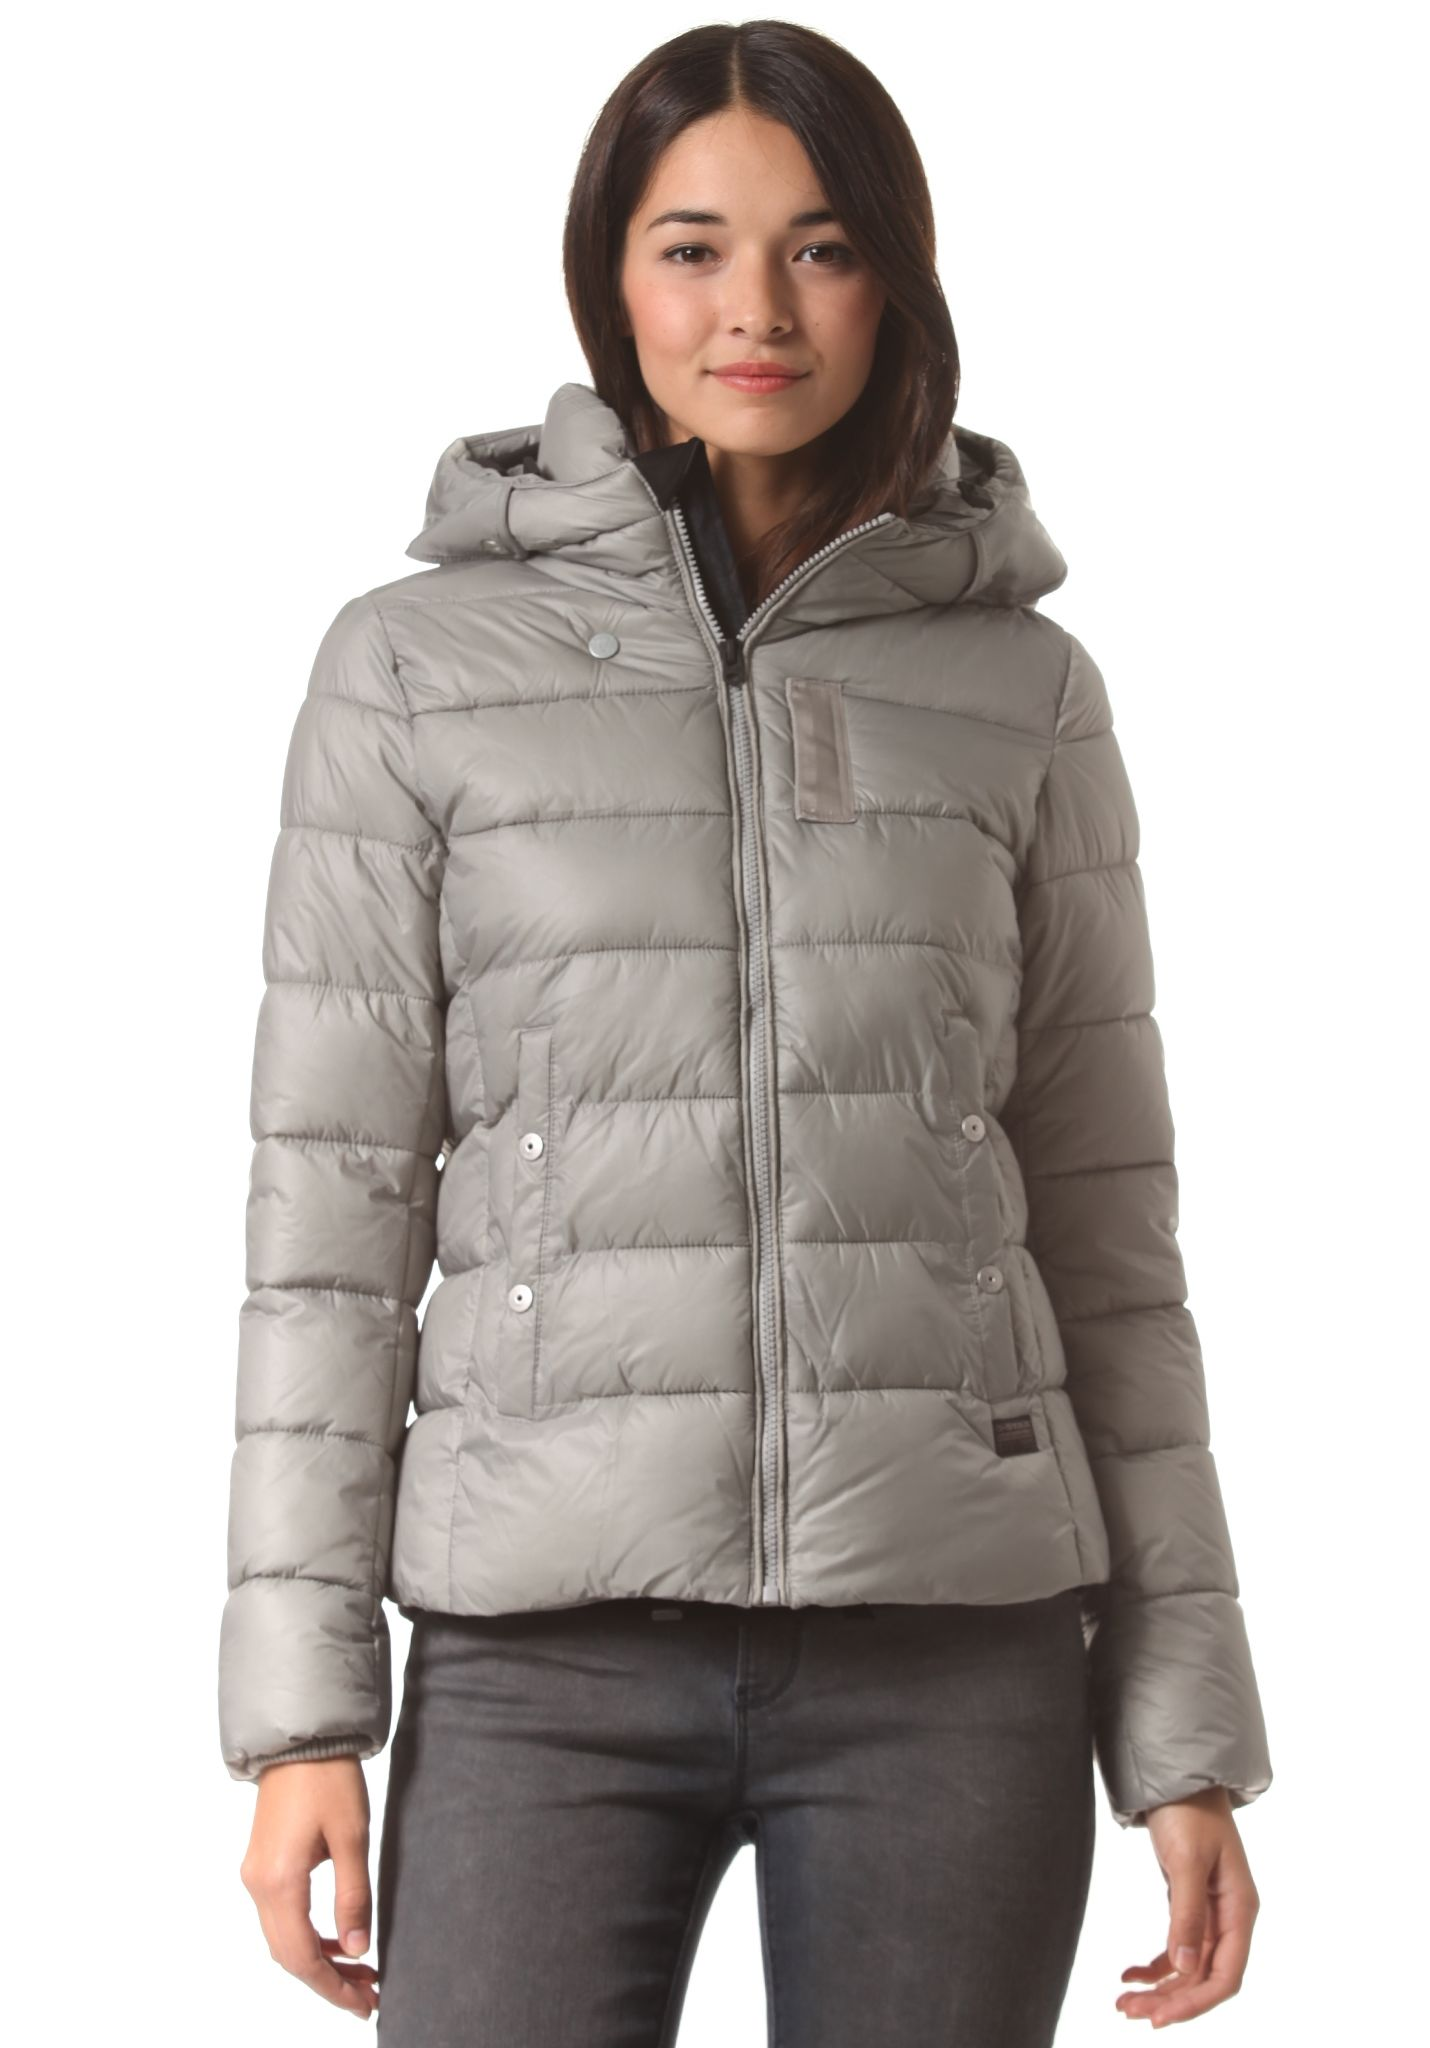 Gstar winterjacken damen